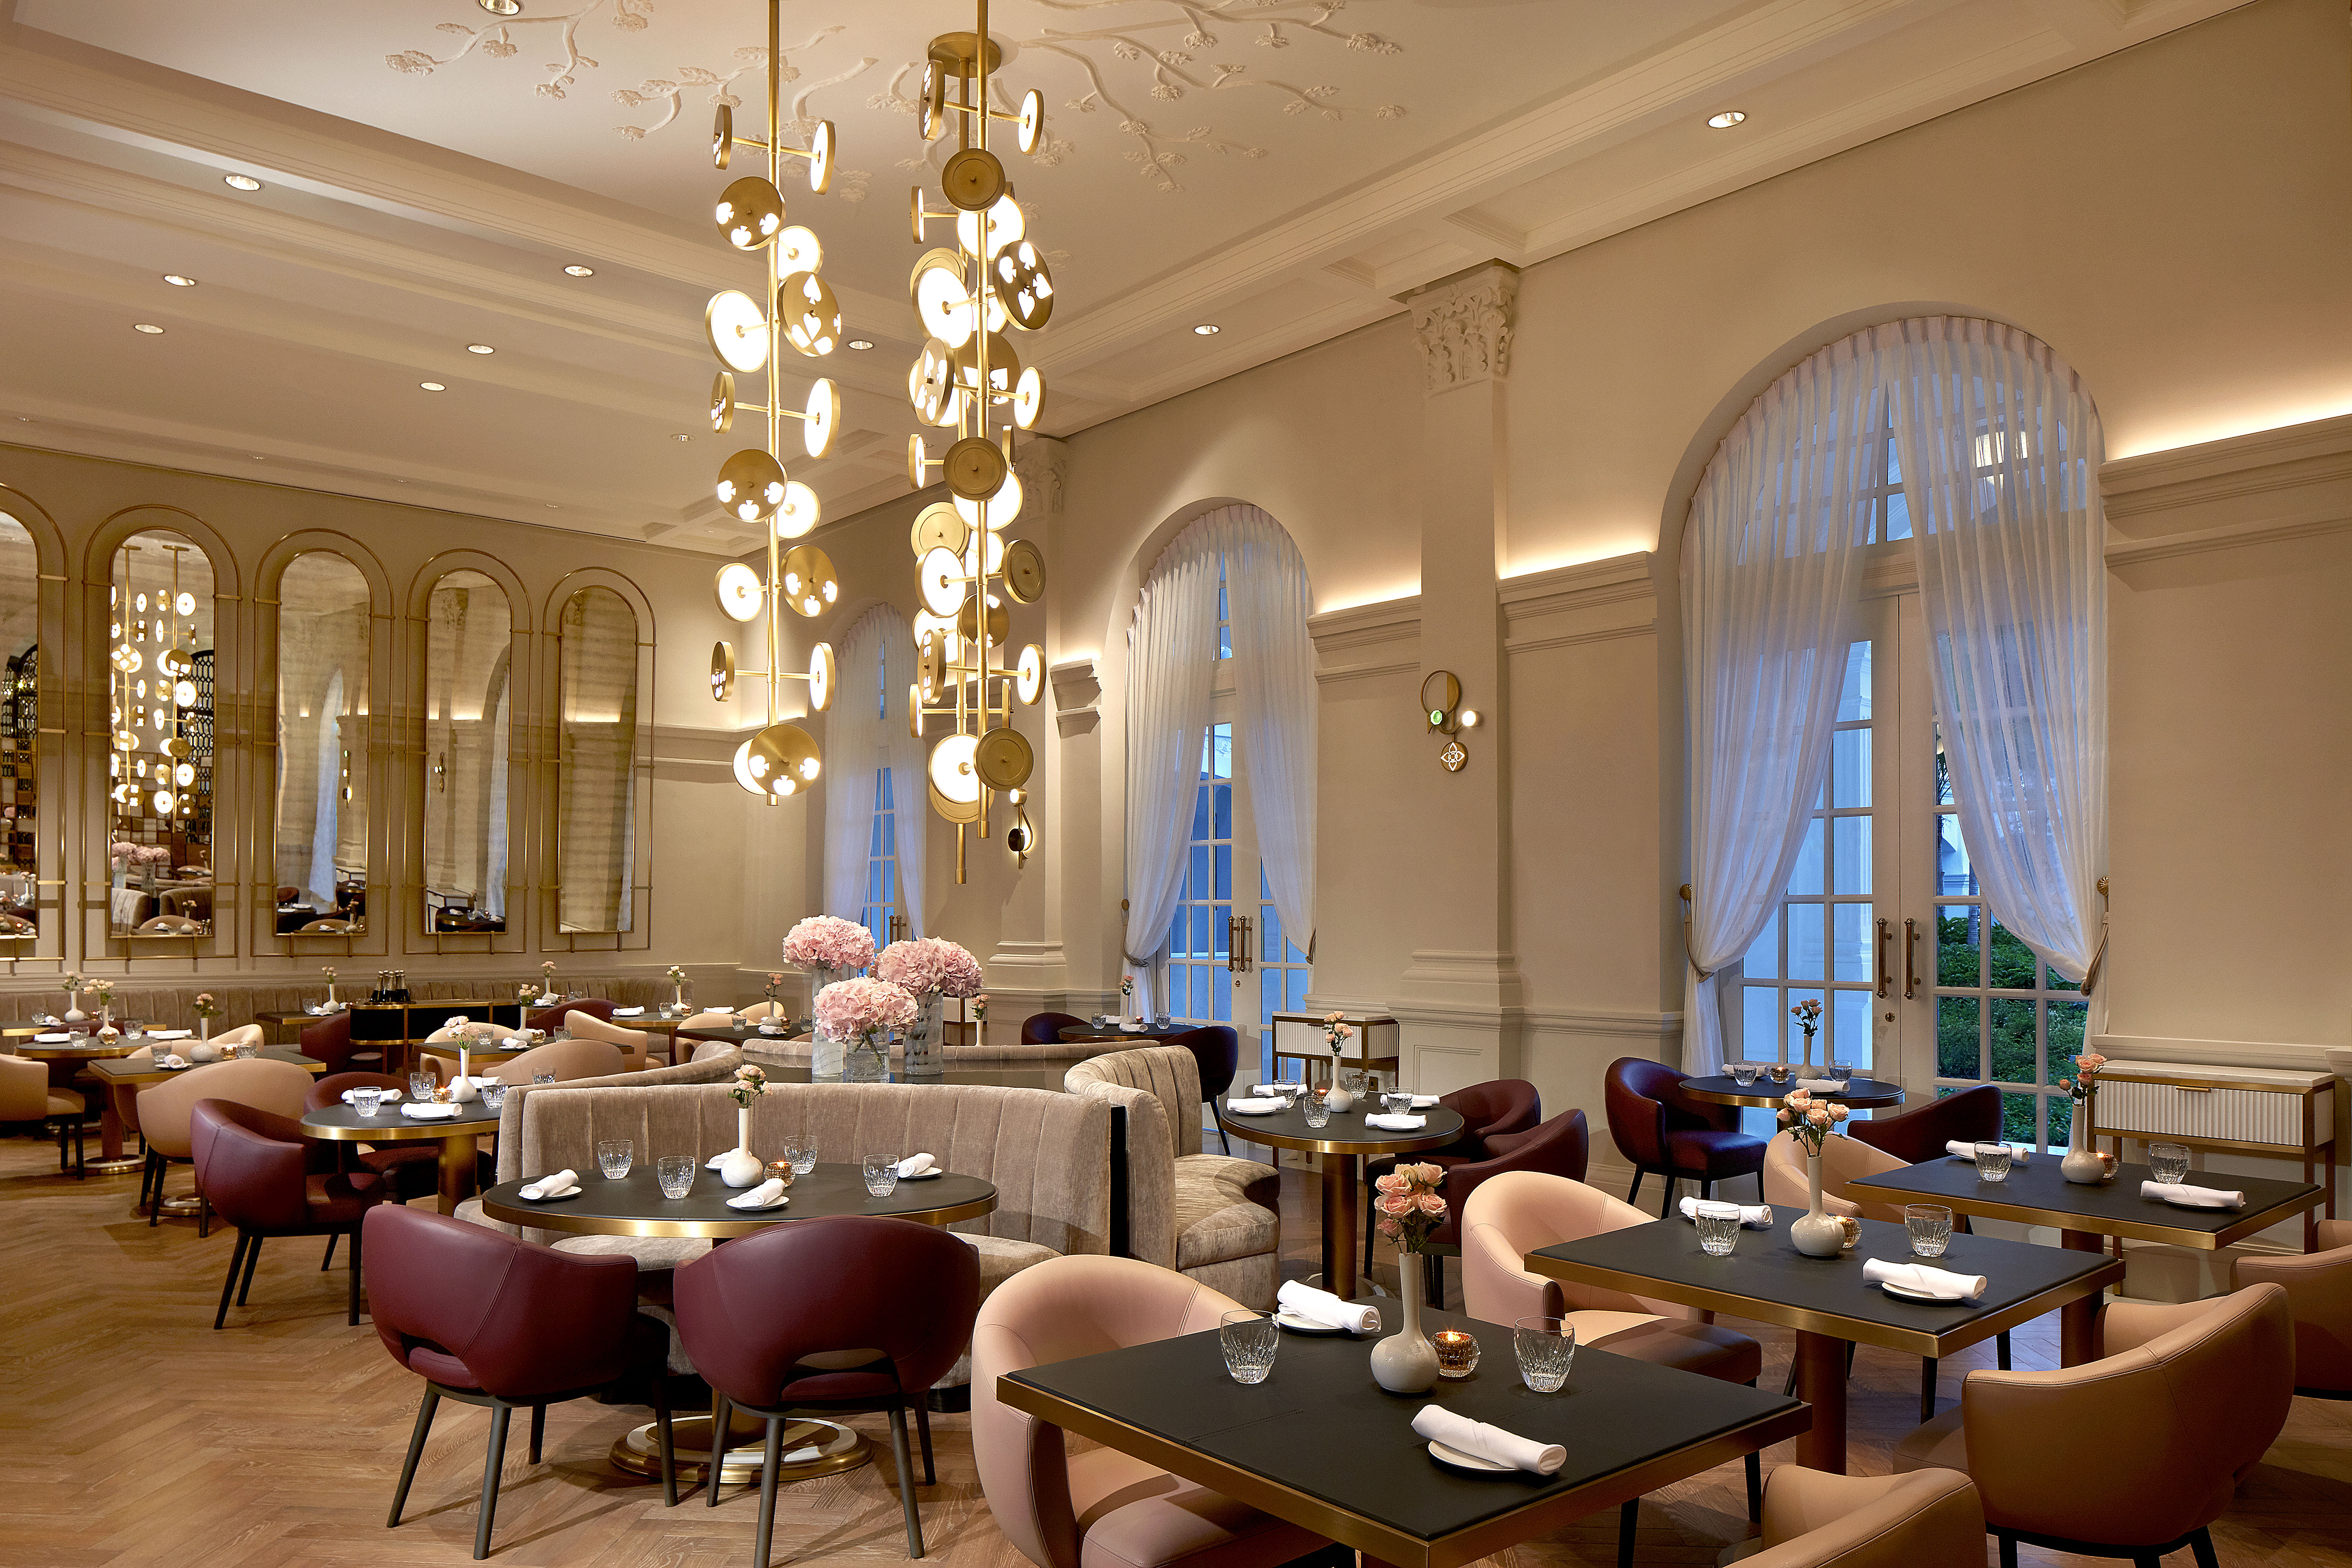 These 6-course Elegance and a 5-course Experience menus are available for lunch and dinner at La Dame de Pic.